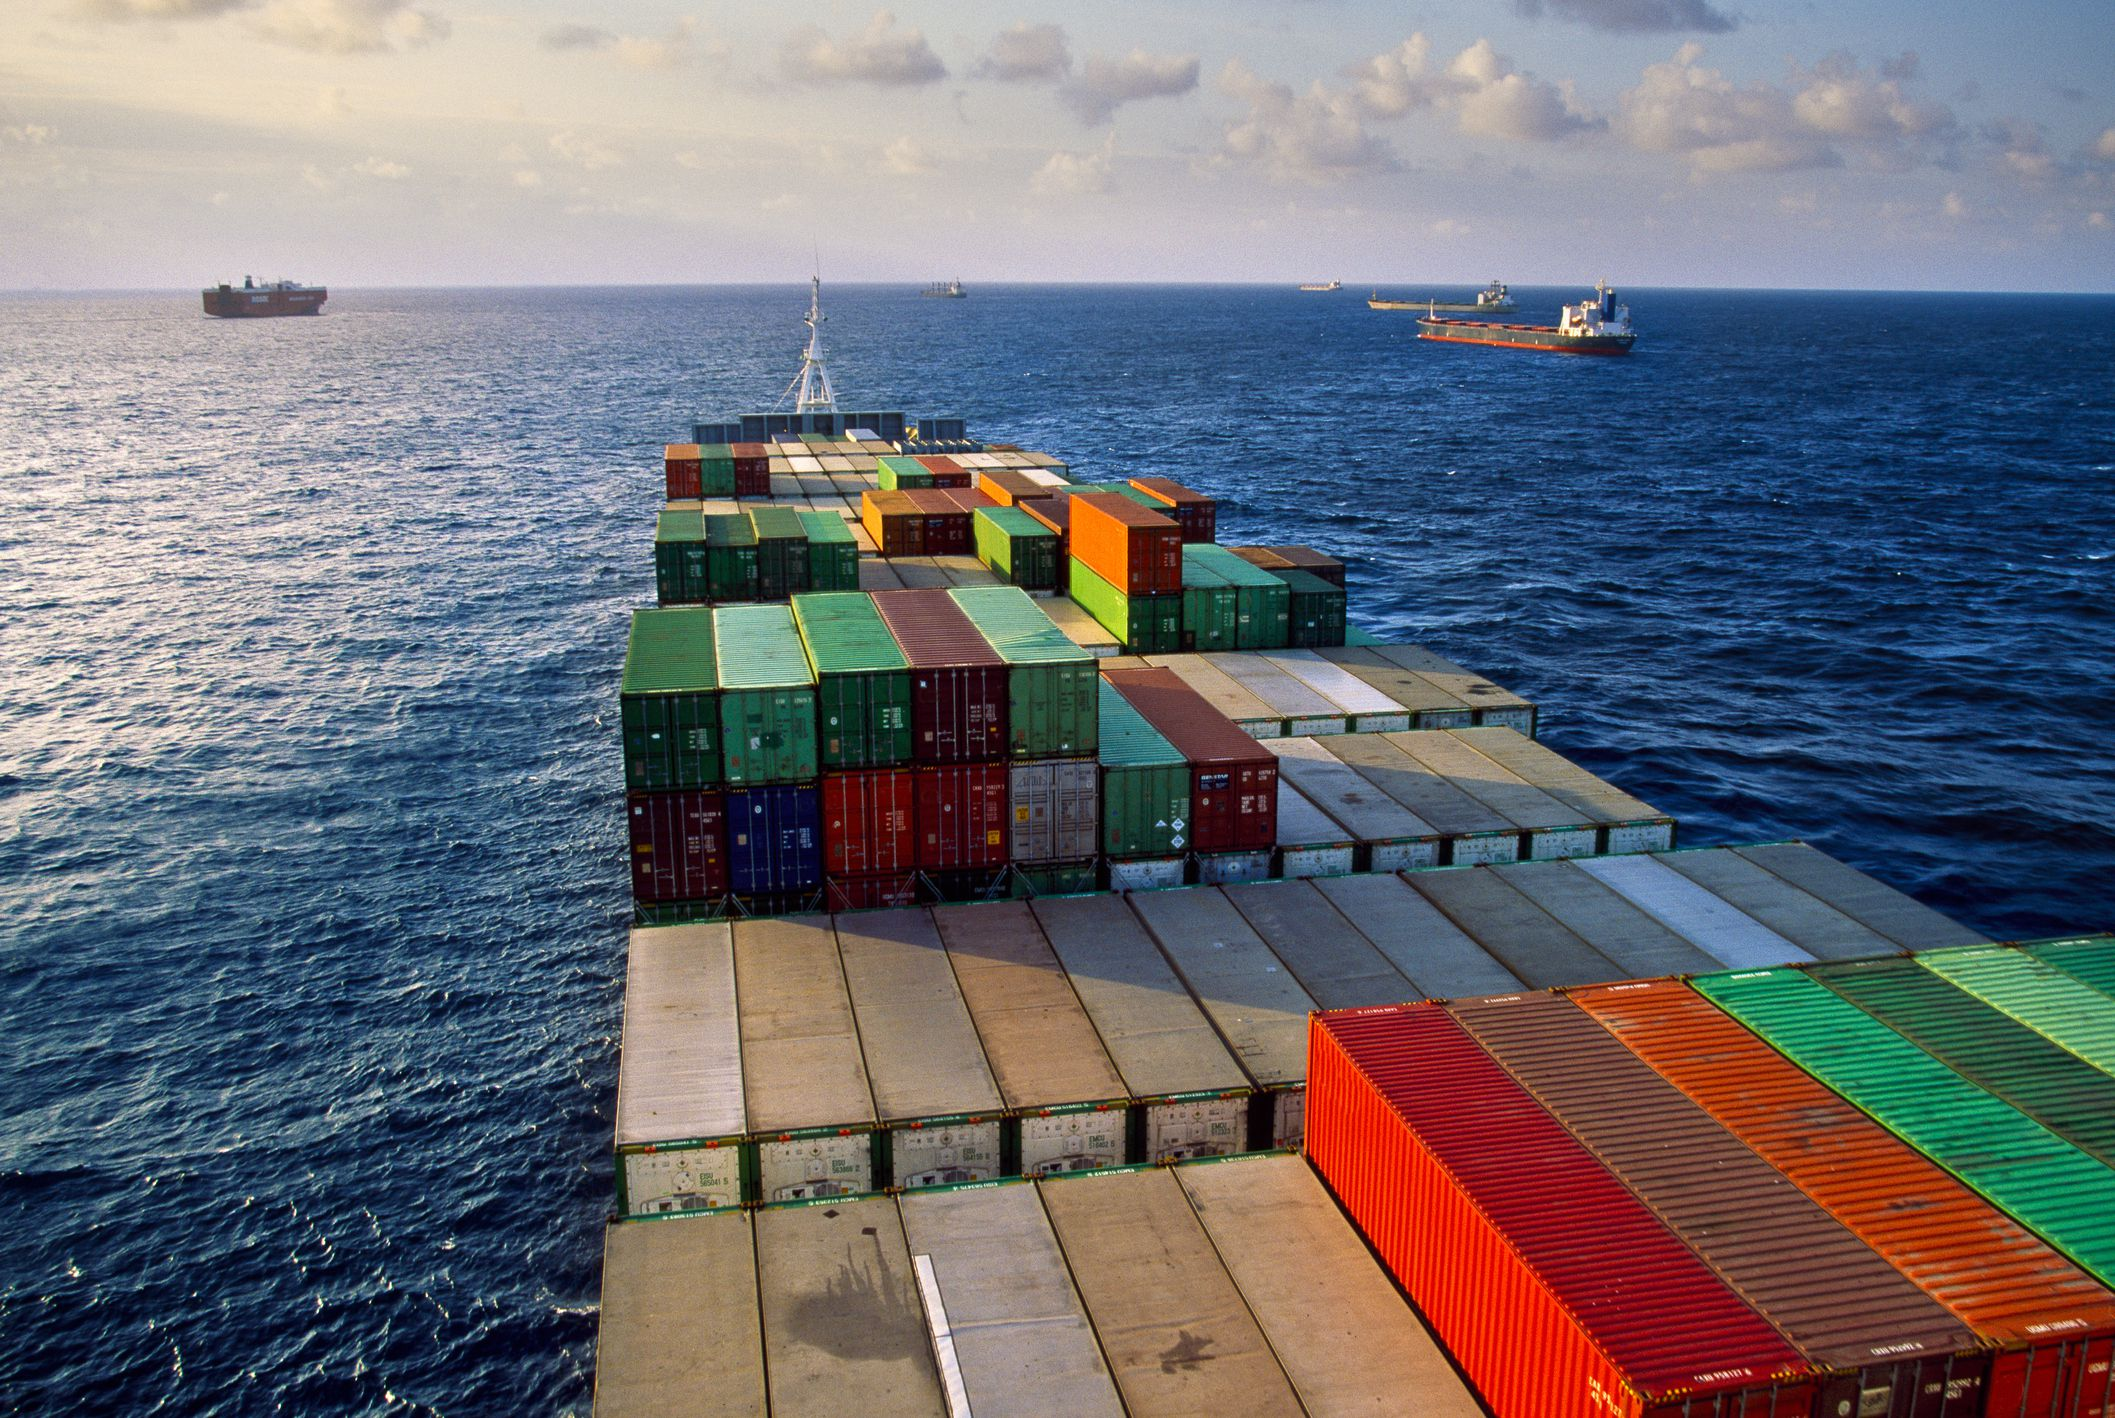 containers-at-sea-freight-forwarding.jpg